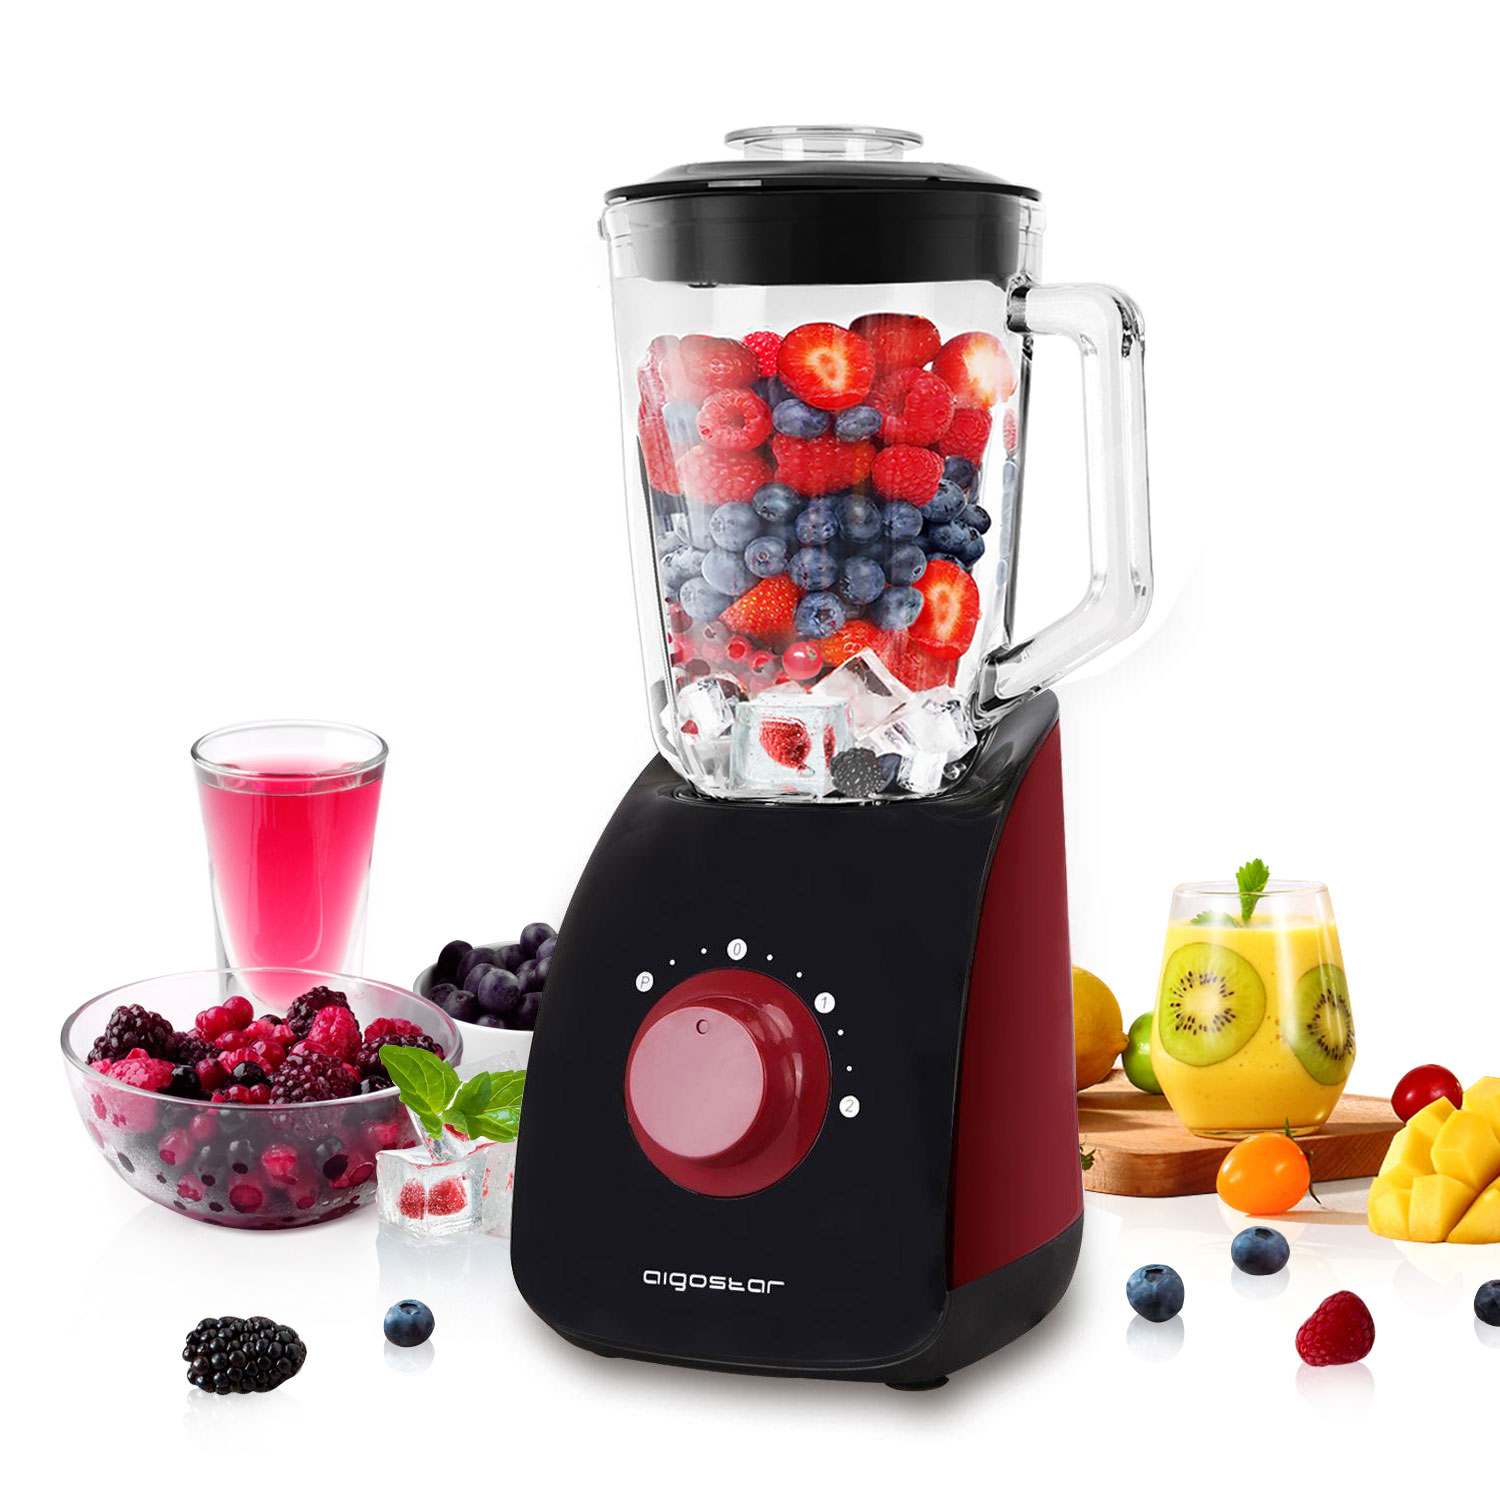 Aigostar Pomegranate Blender Multifunctional Table, 1,5 Liters, 2 Speed And 4 Blades 750 Stainless Steel, Black And Red.